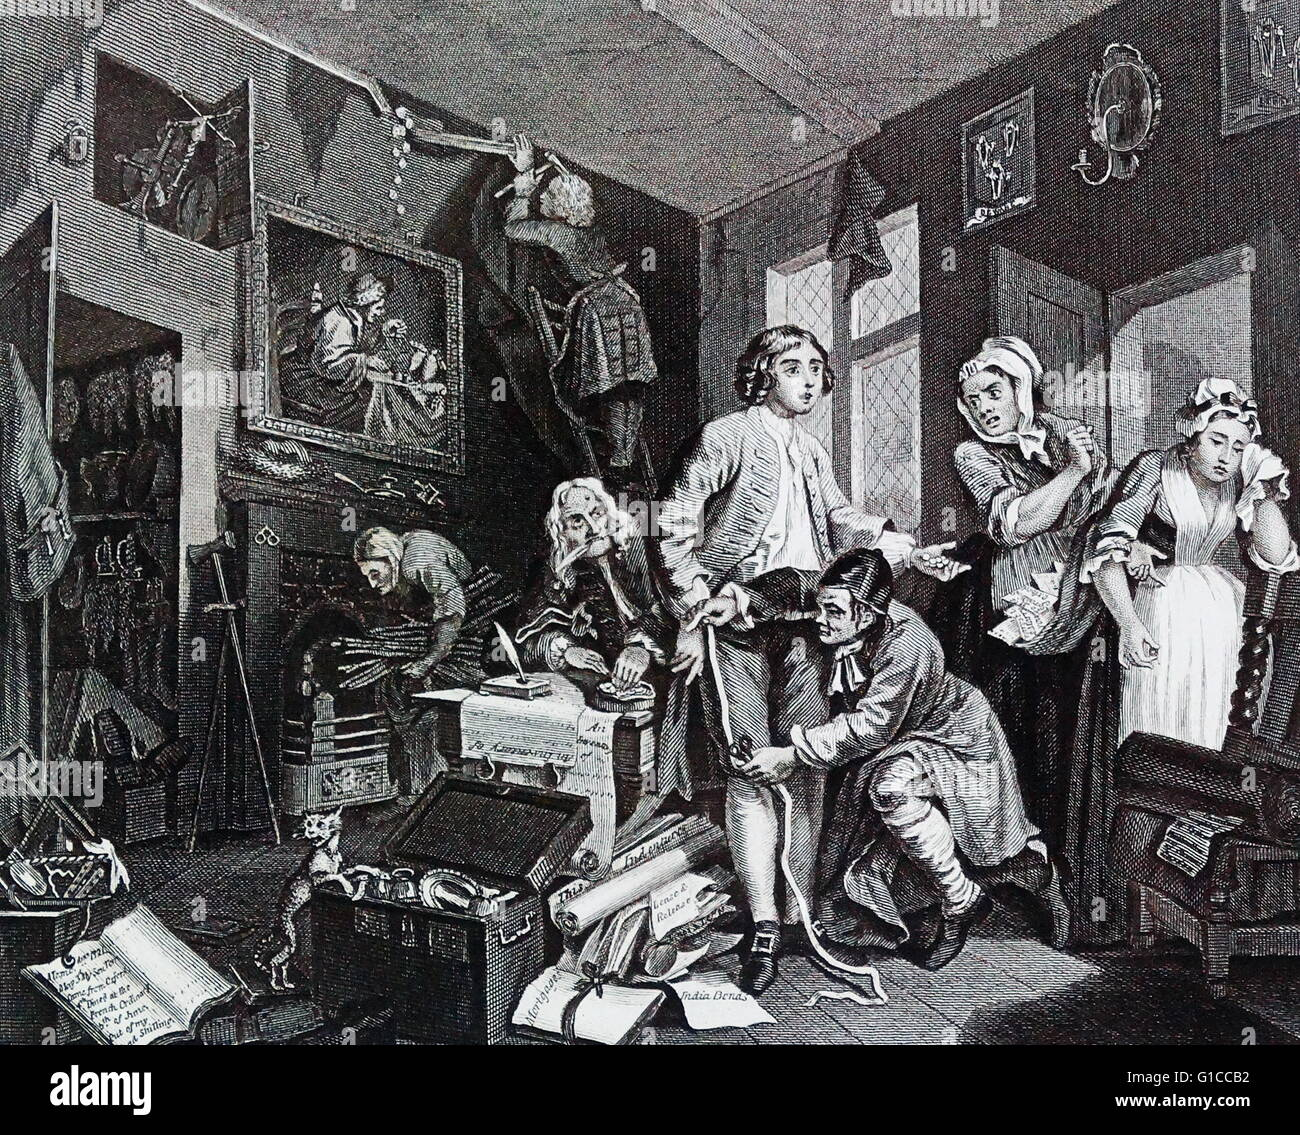 A Rake's Progress - Plate 1 - The Young Heir Takes Possession Of The Miser's Effects by William Hogarth - Stock Image